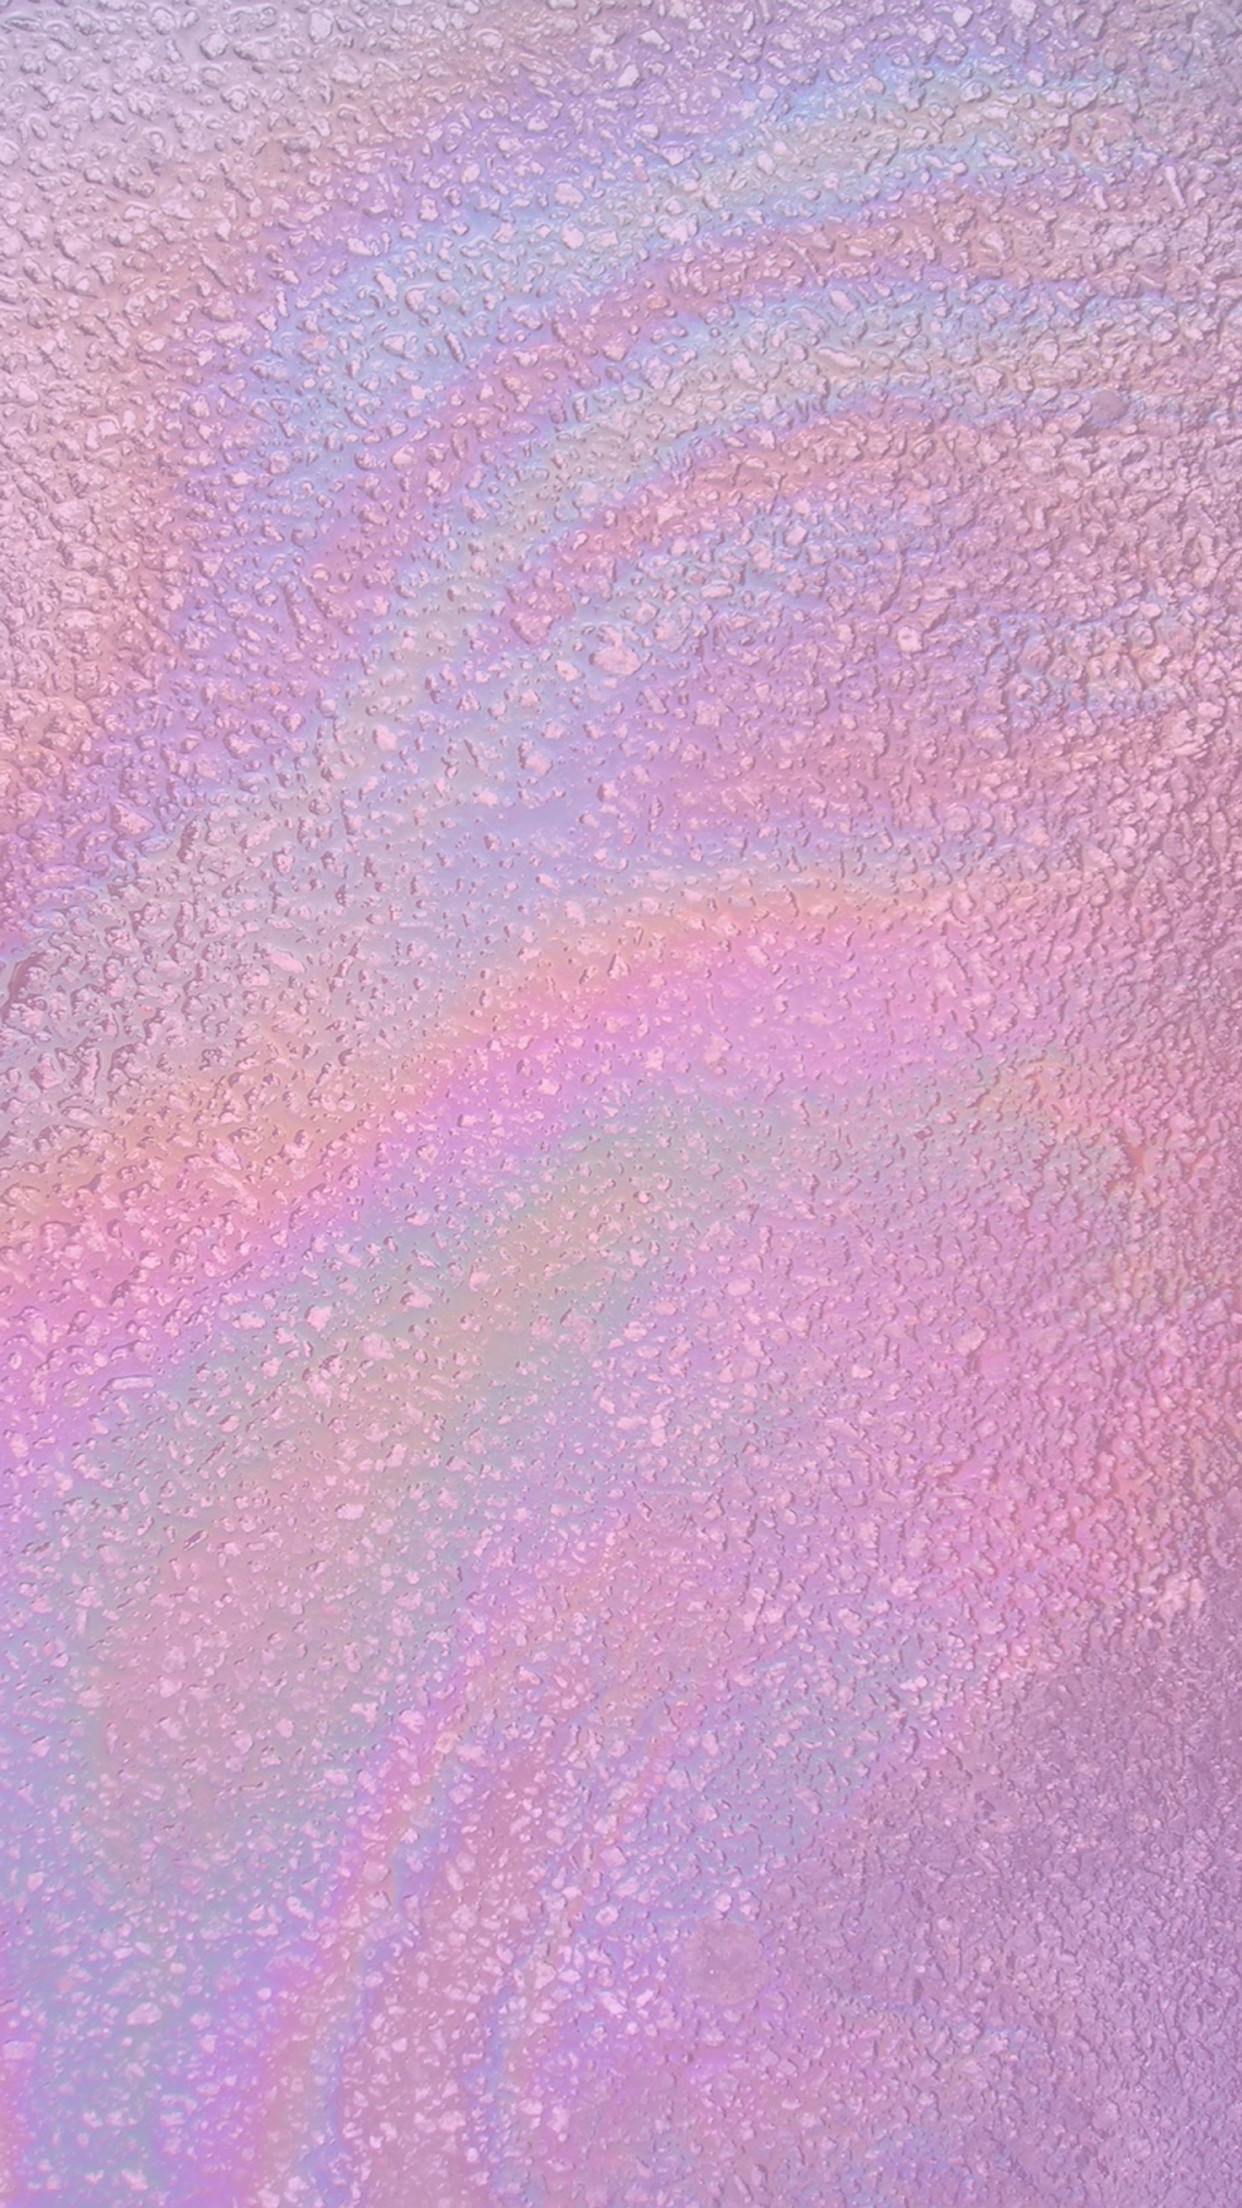 Cute Holographic Wallpapers Cute Plain Backgrounds 183 ①